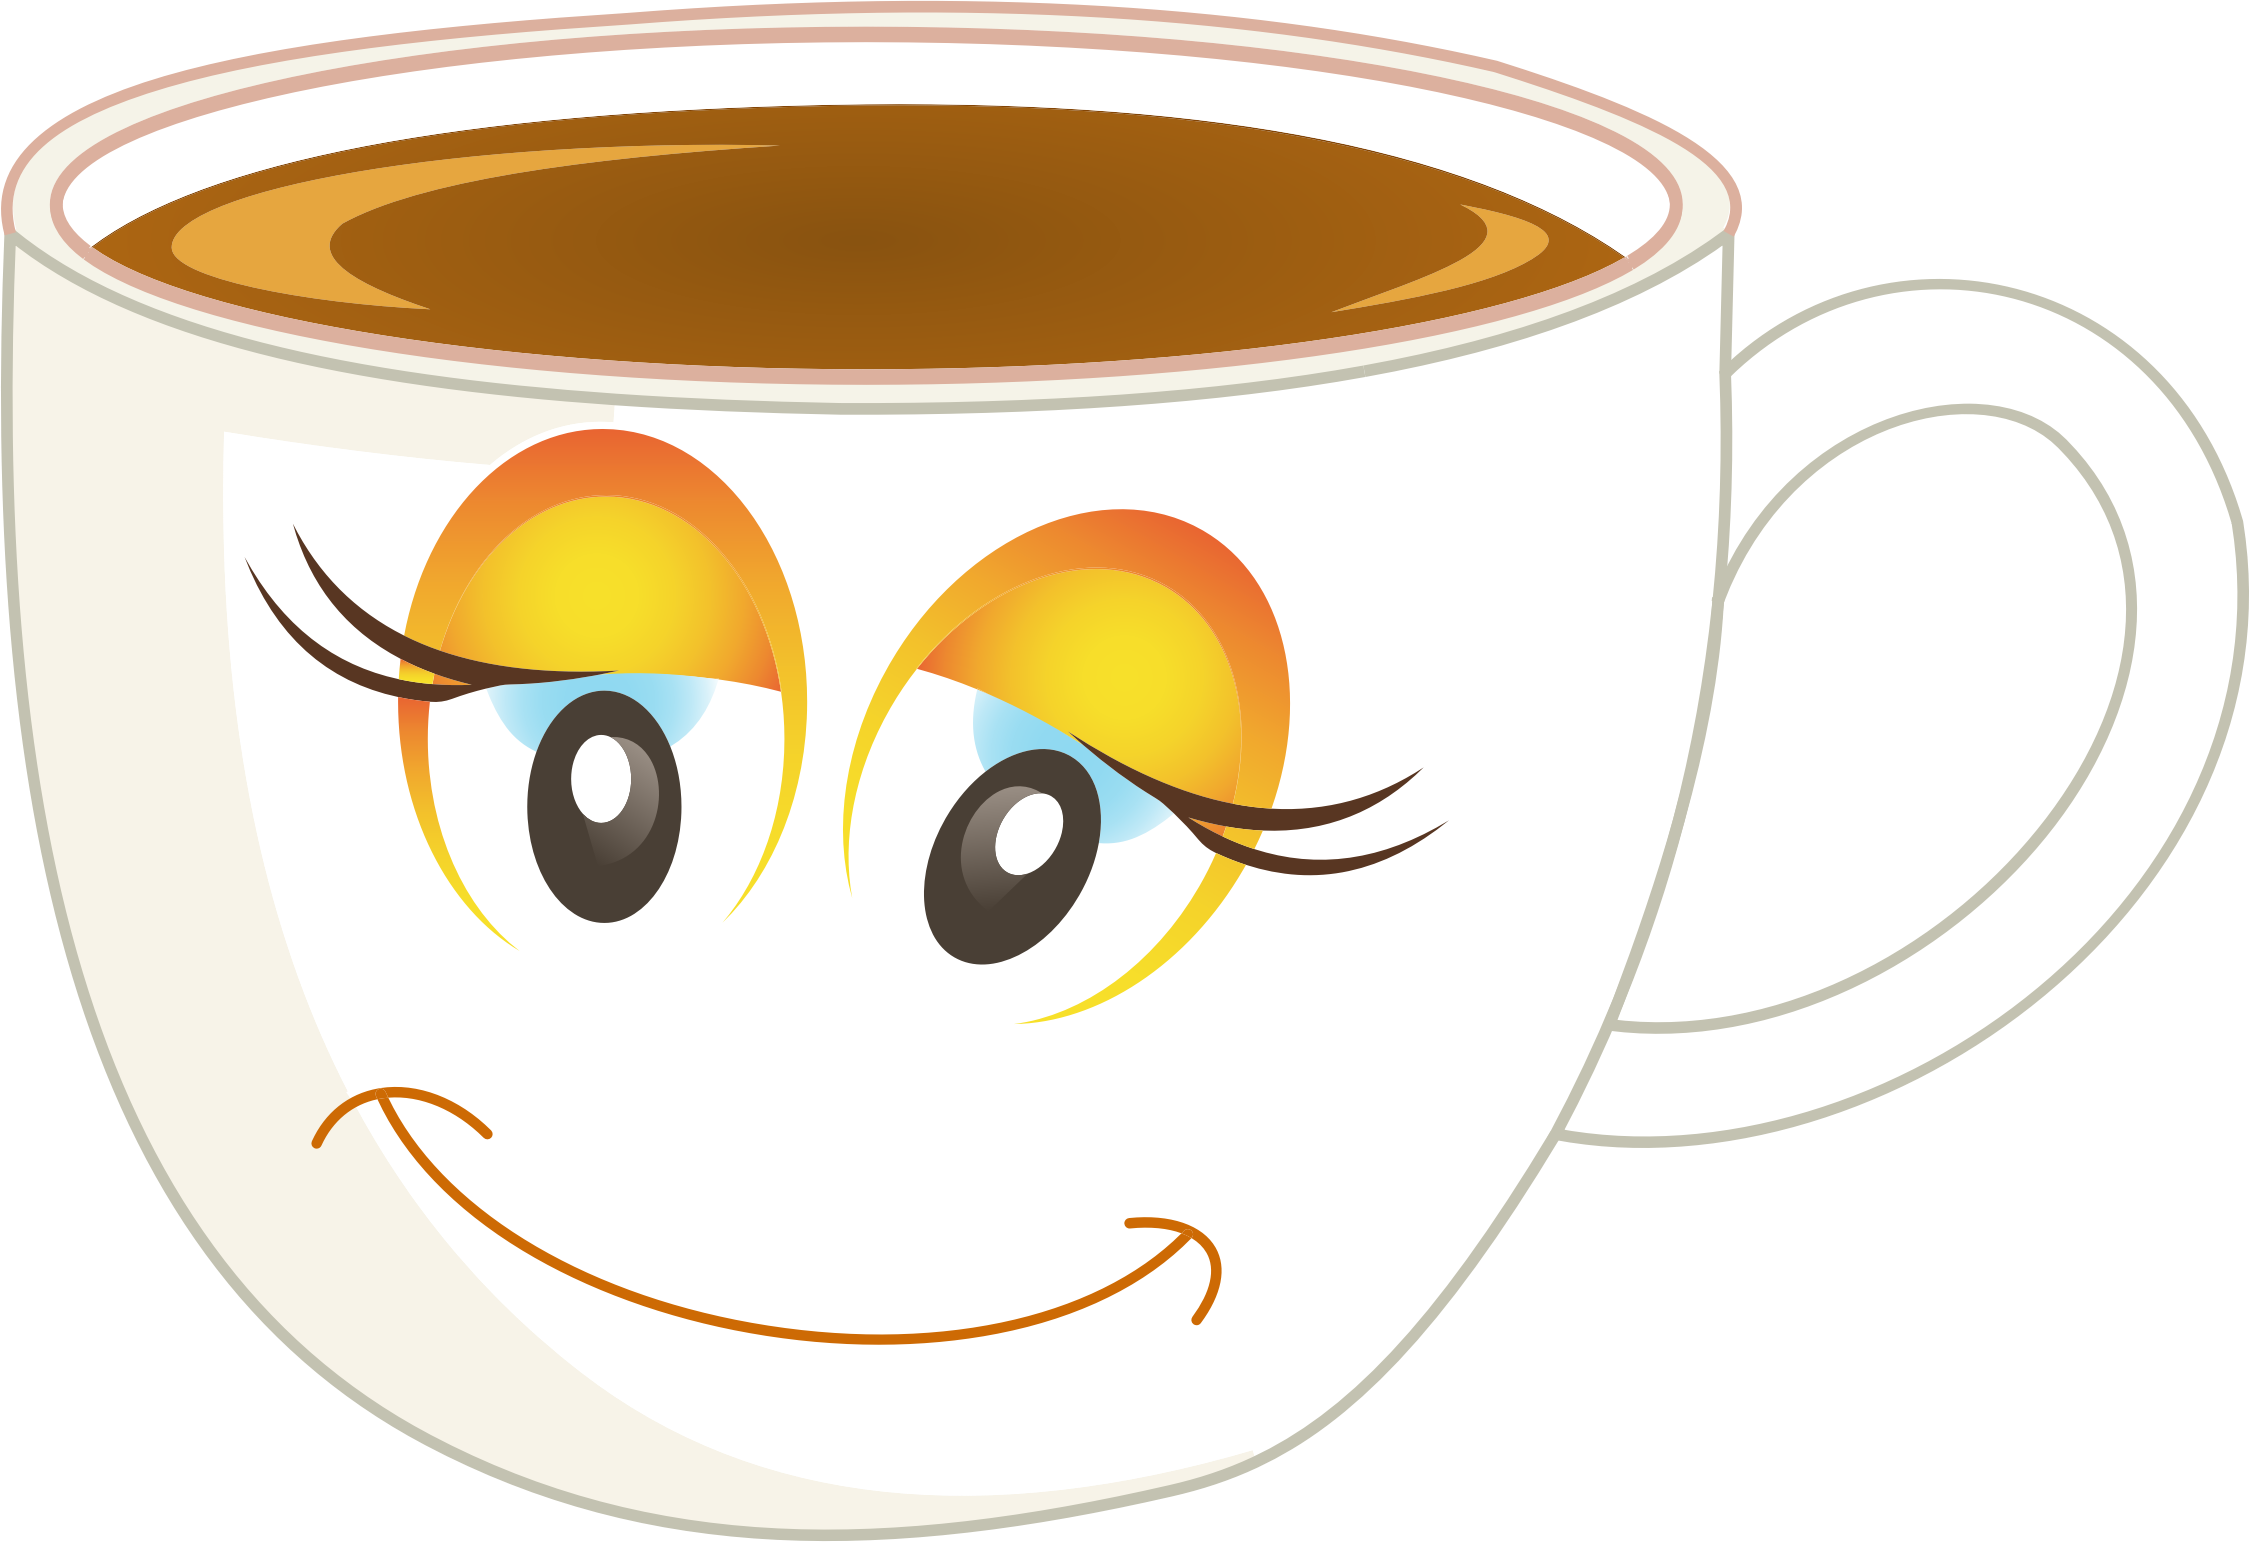 Coffee cup clipart happy. Anthropomorphic female of or